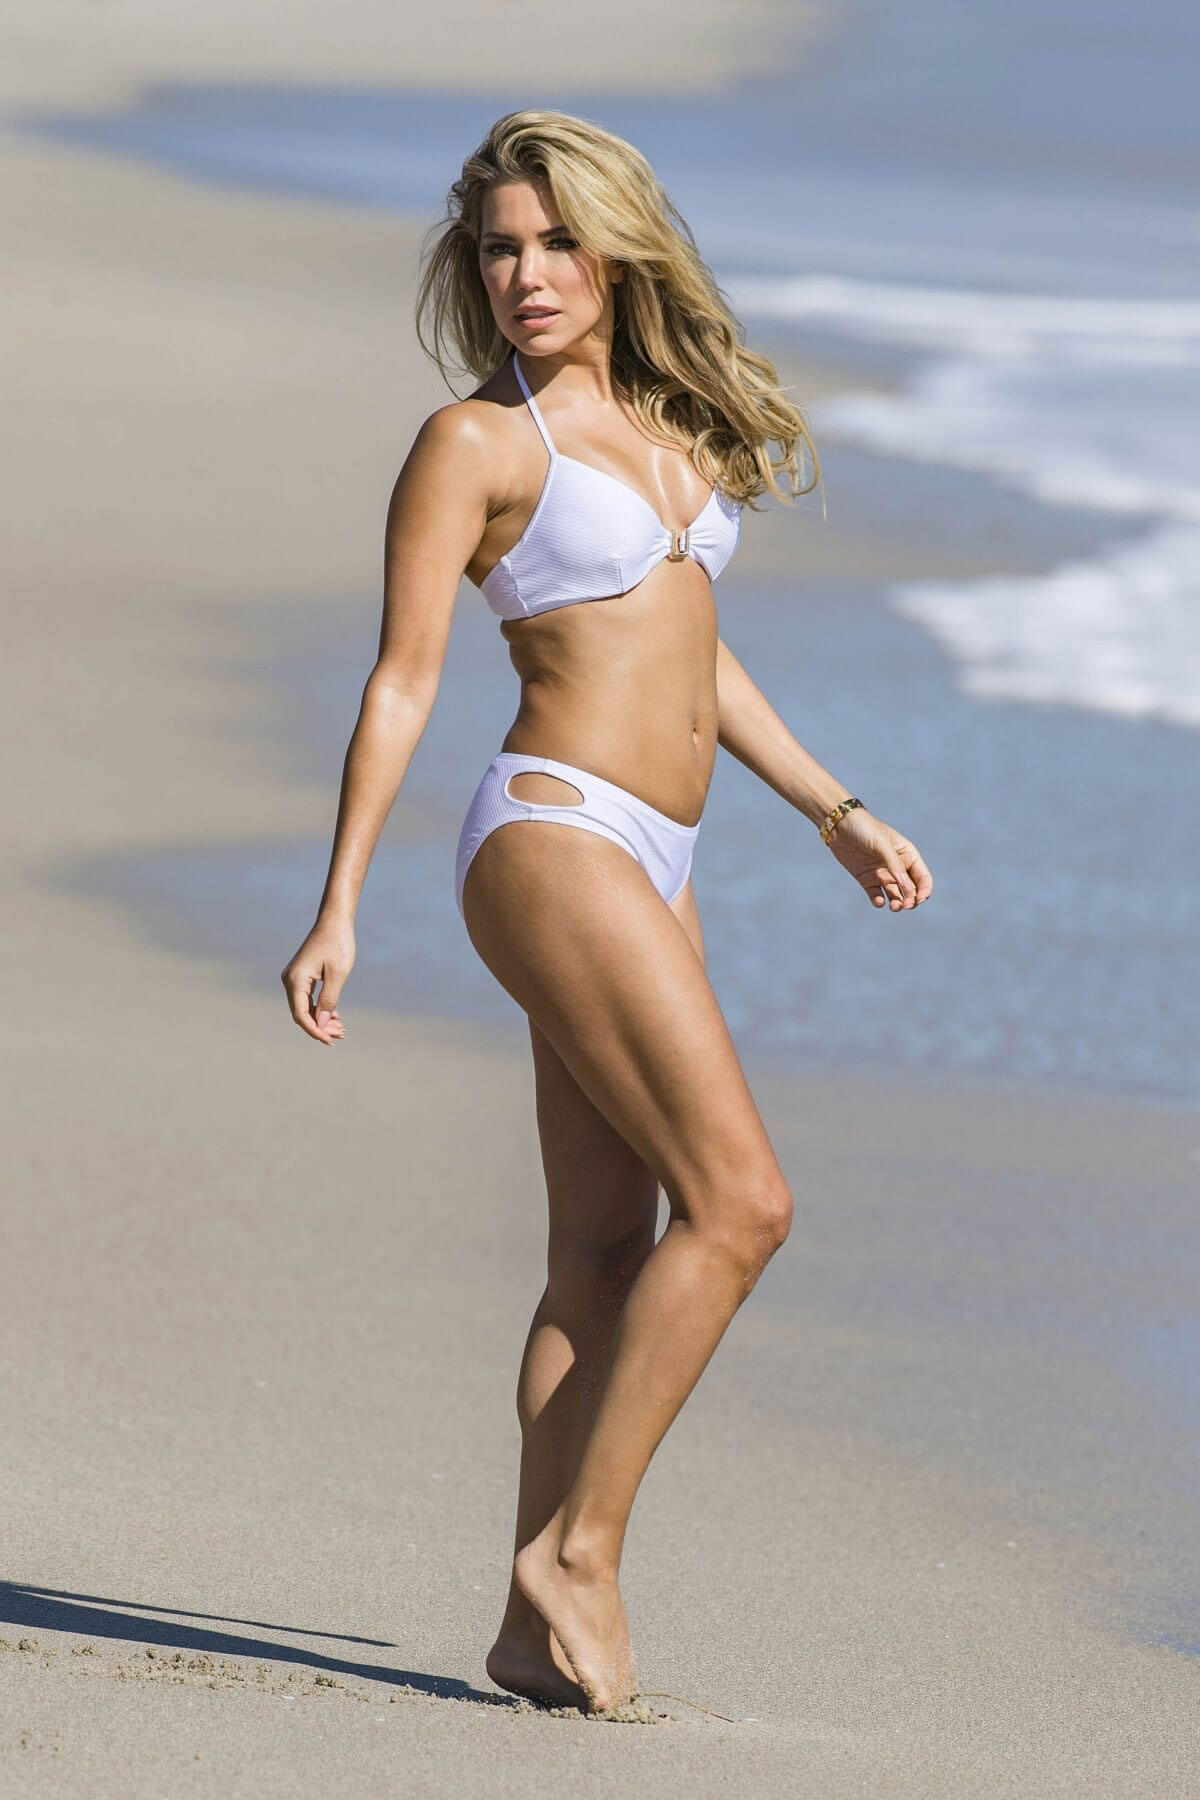 Sylvie Meis nude (97 photos), Sexy, Paparazzi, Feet, swimsuit 2015